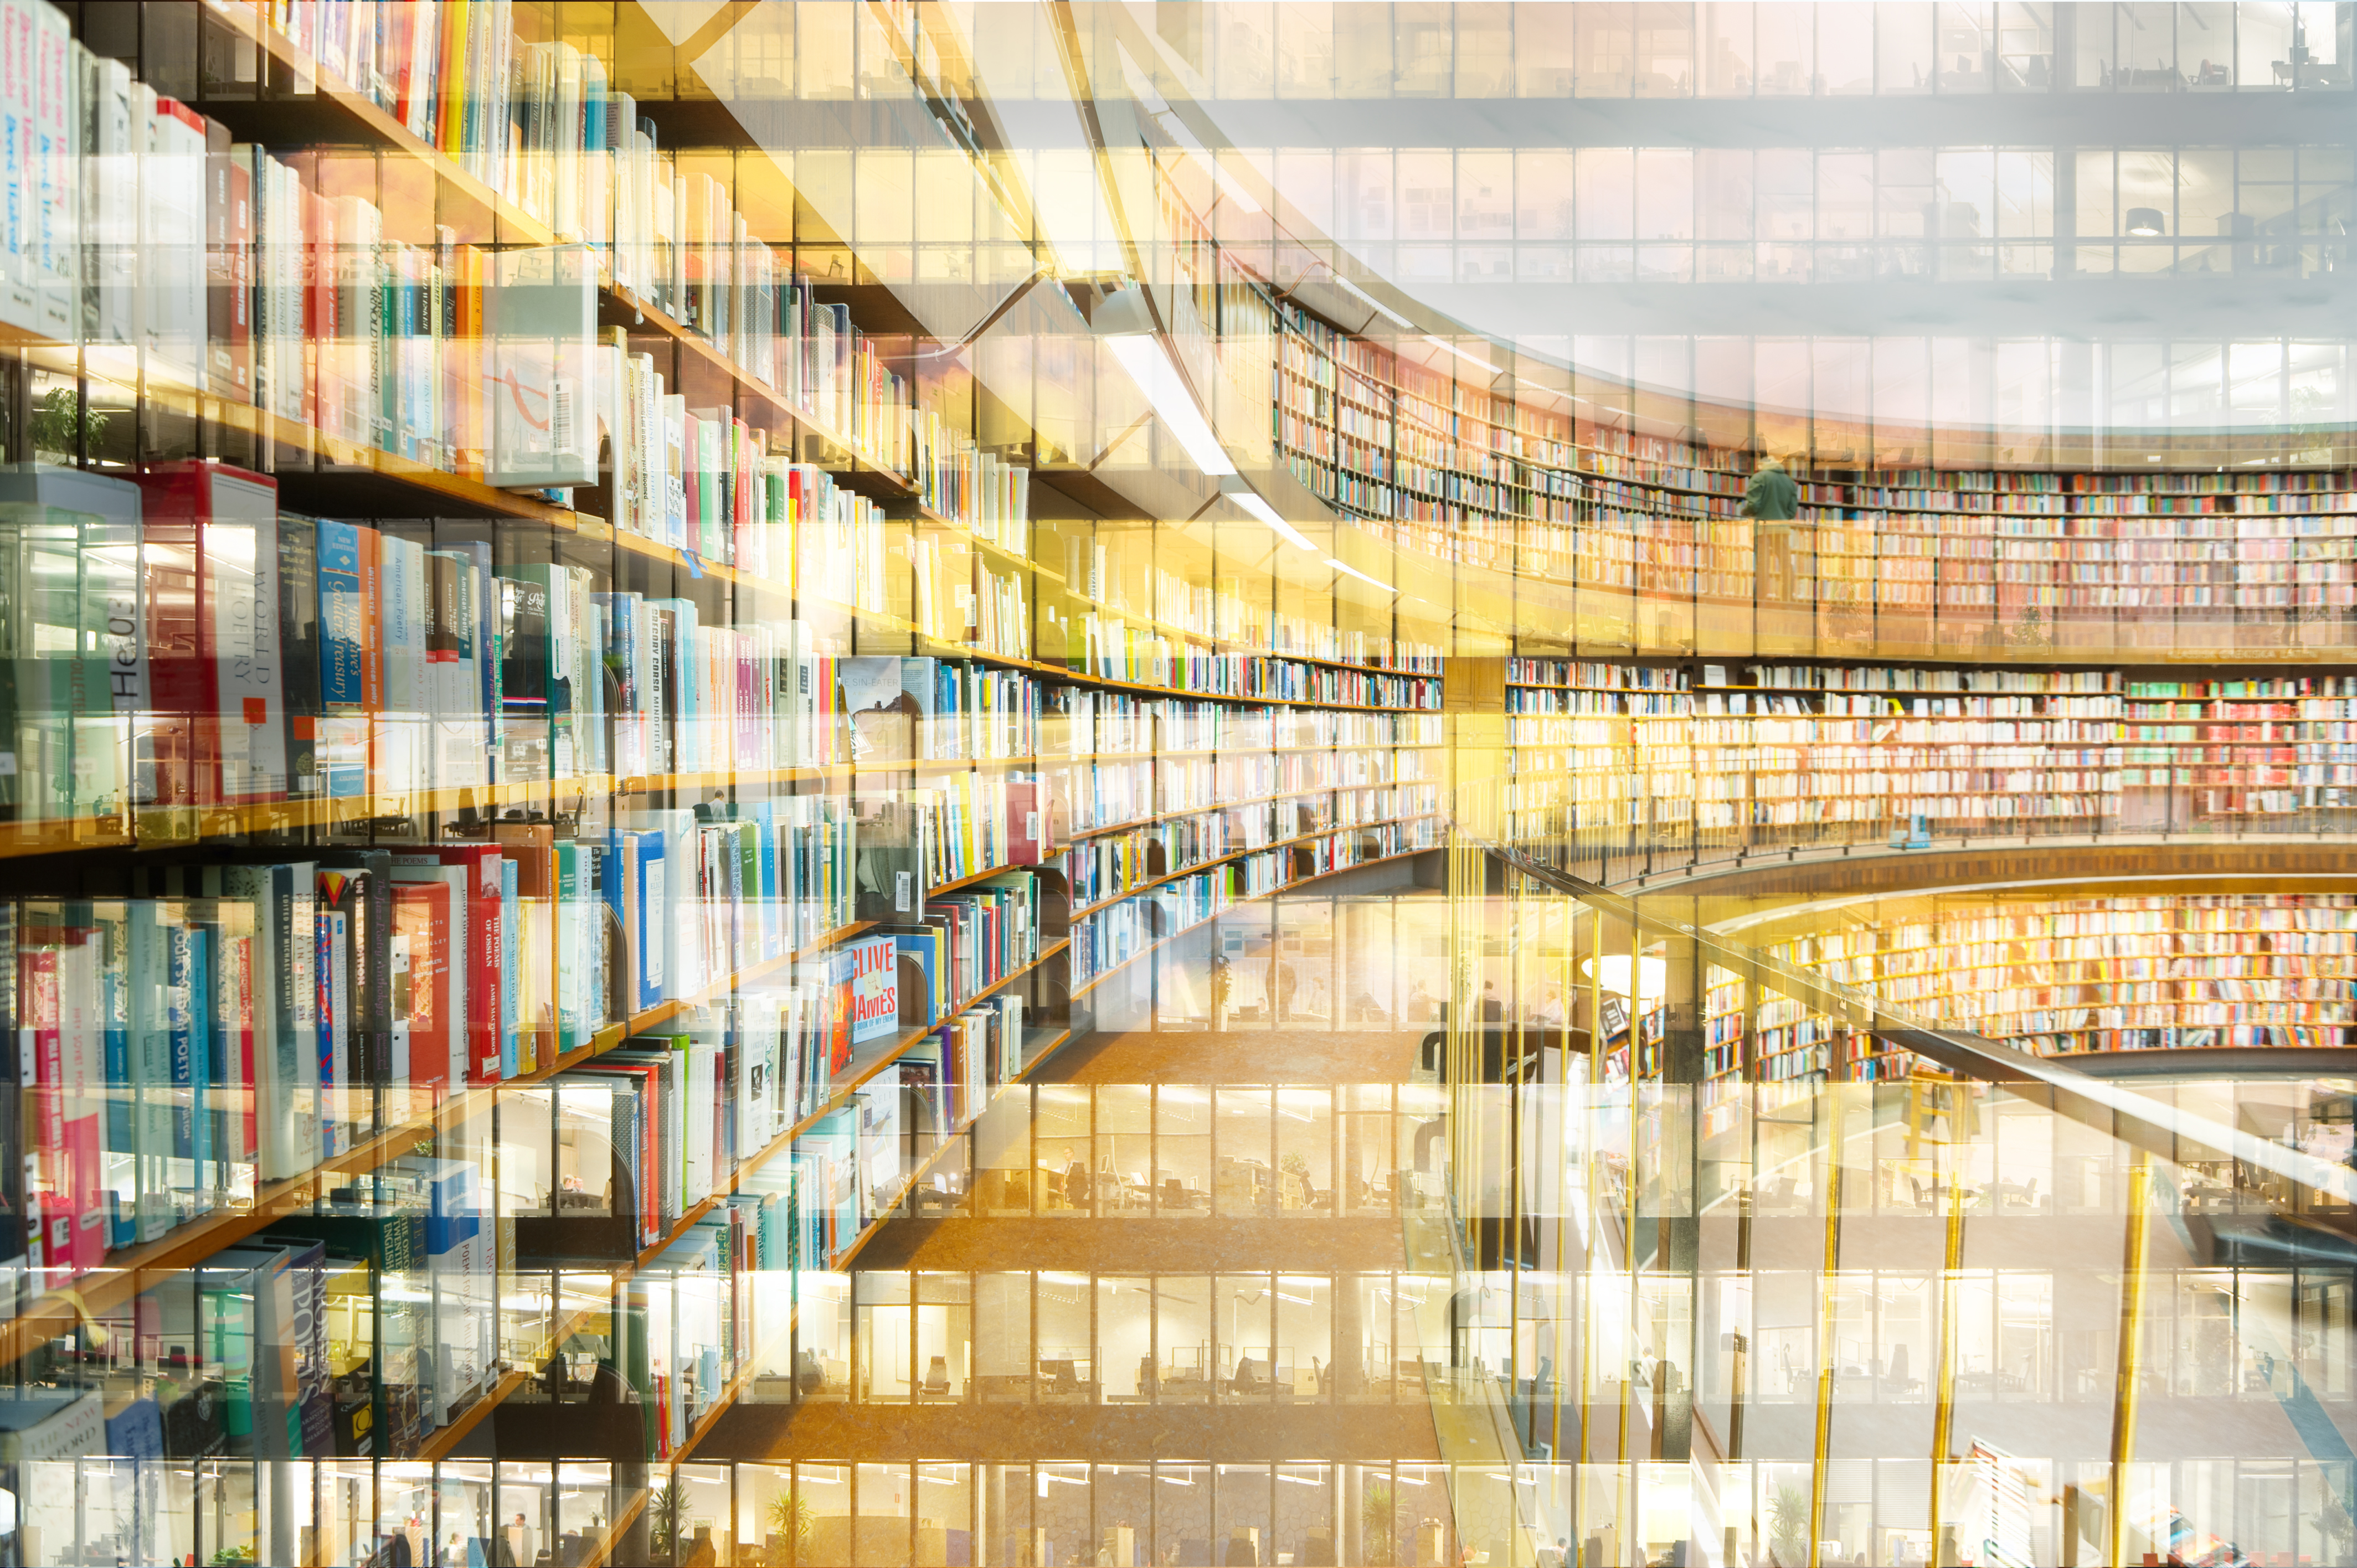 LIVESTREAM: Library Science Talks: Brightening an Archive – Streamlining Access to OA Datasets